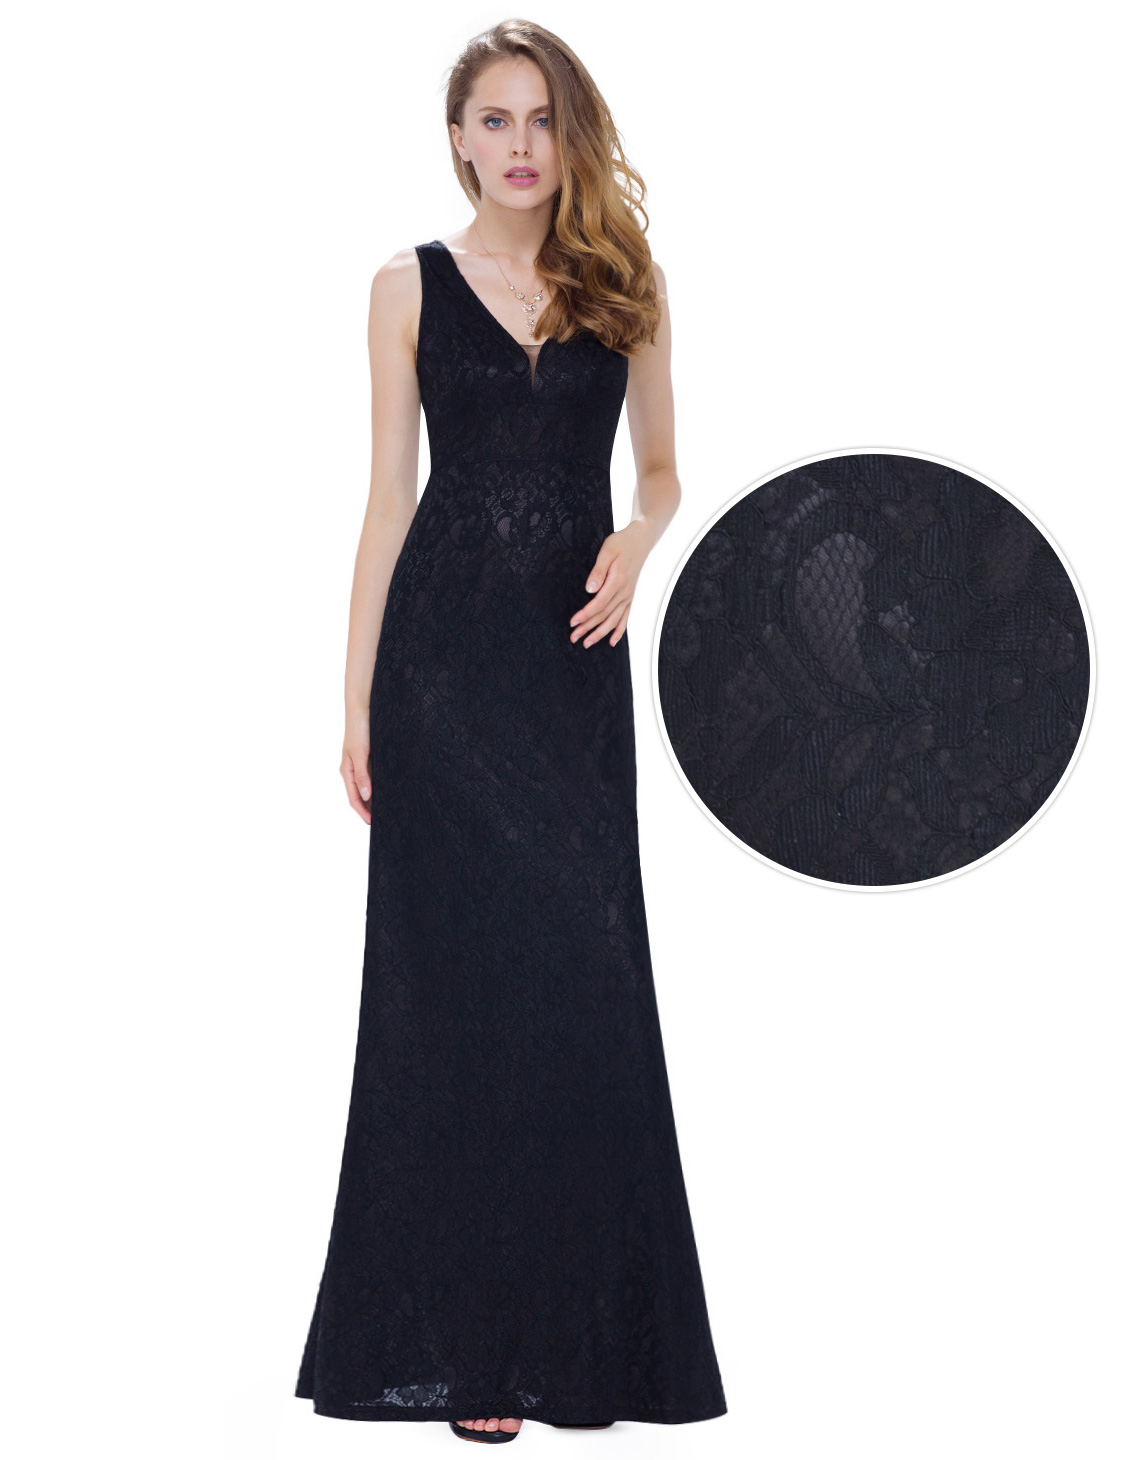 Womens Lace Evening Dresses Long V Neck Homecoming Prom Gown 08917 ...